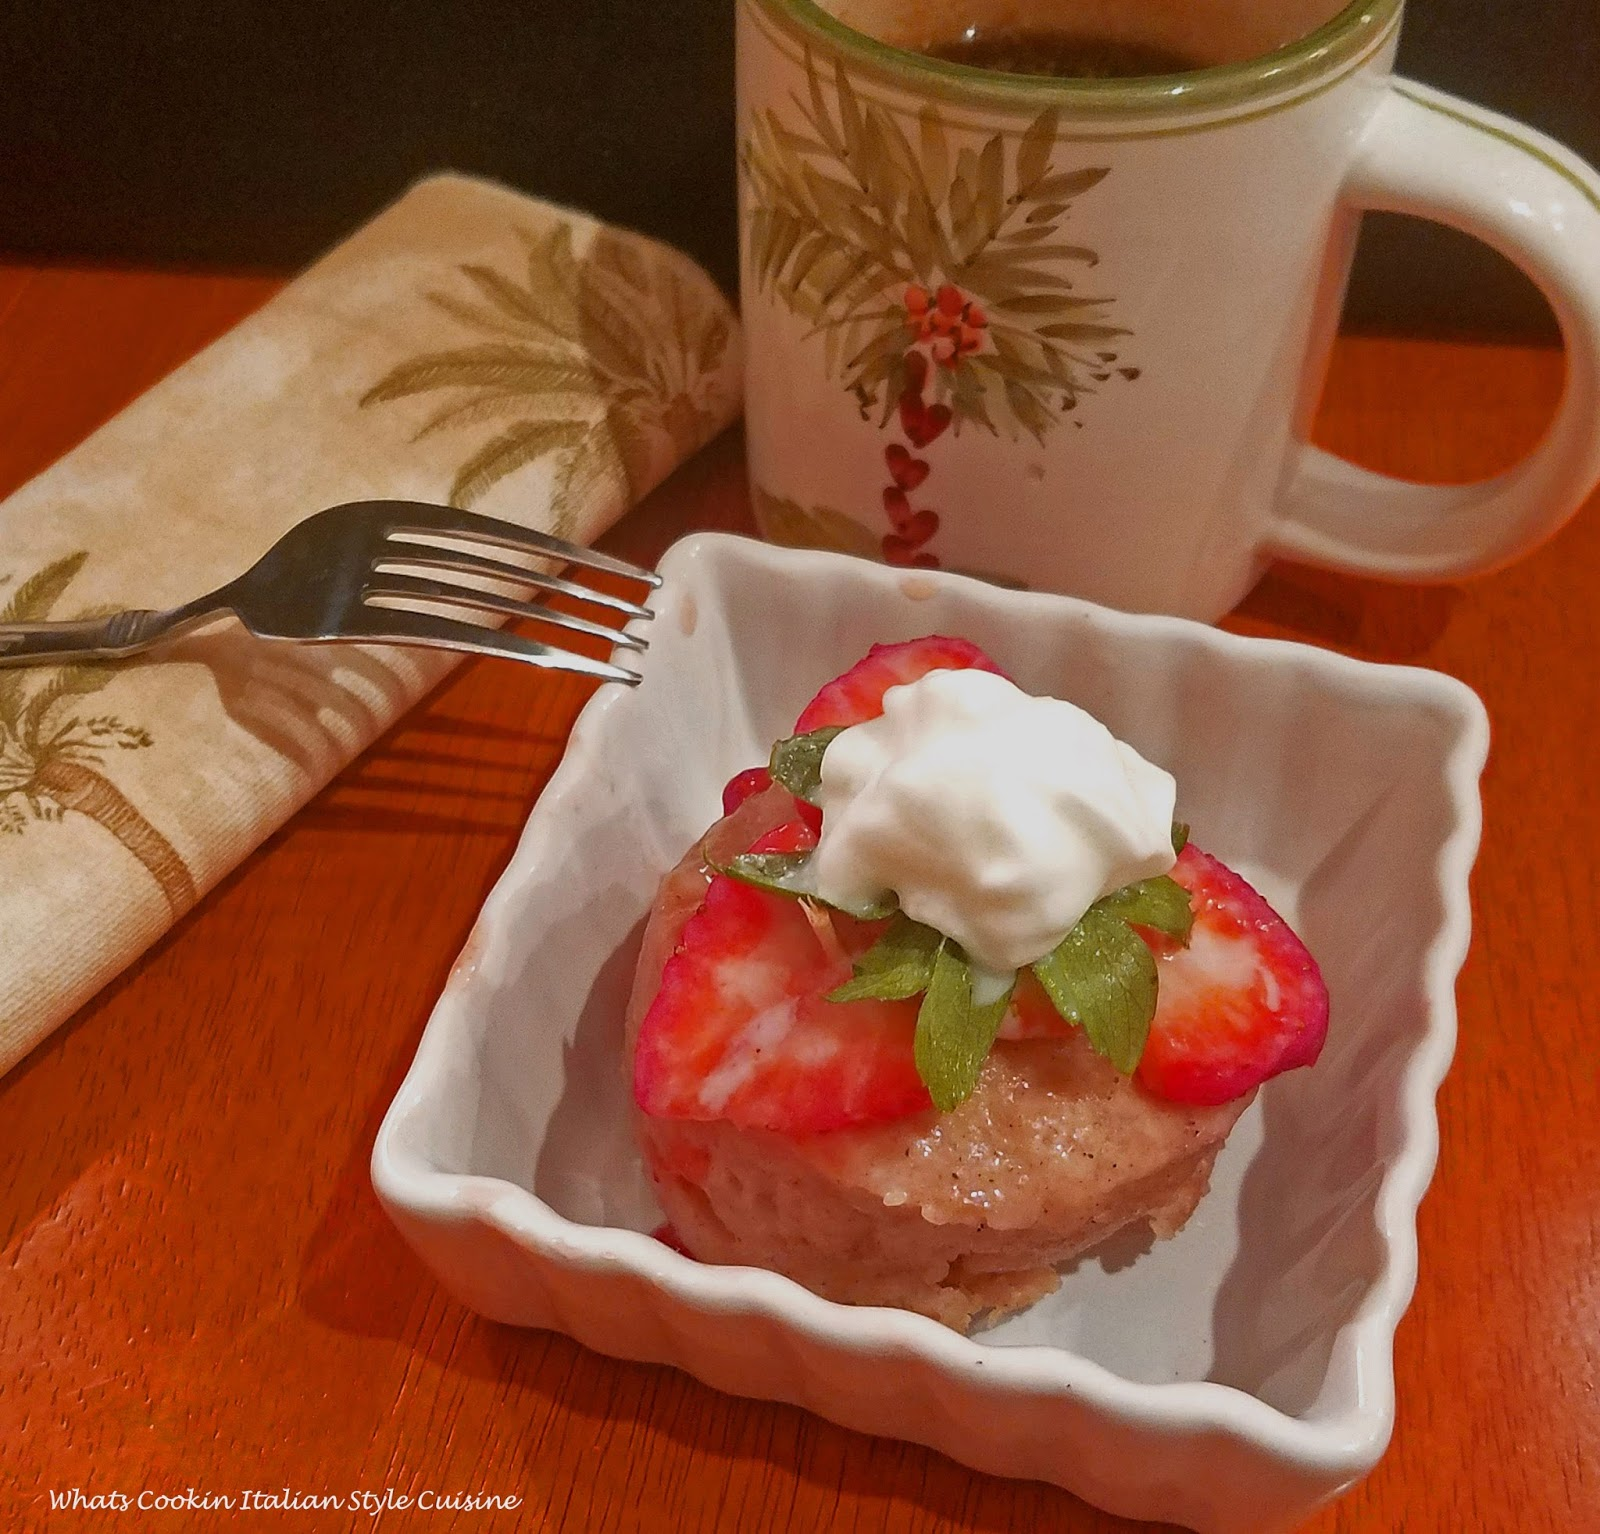 Applesauce mug cake stays moist and with strawberries on top makes it the best shortcake in minutes